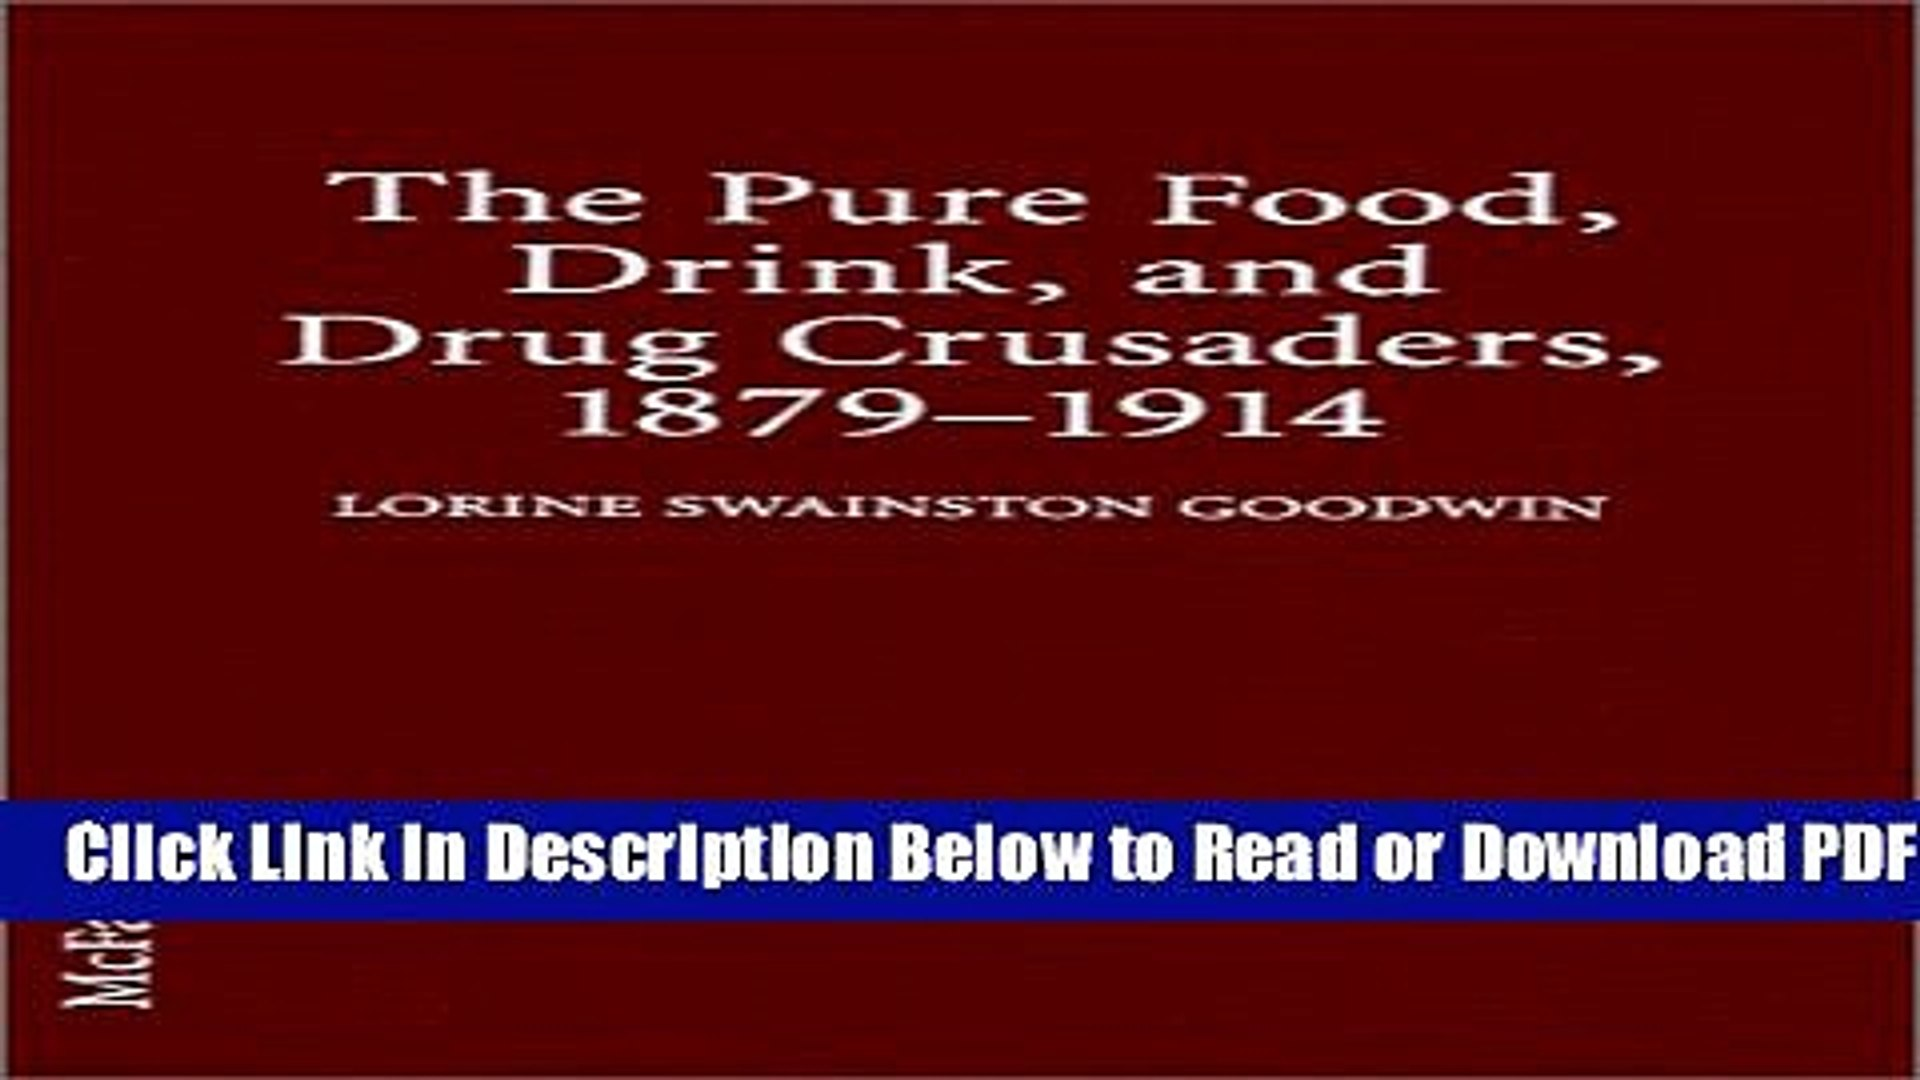 [PDF] The Pure Food, Drink, and Drug Crusaders, 1879-1914 Popular New